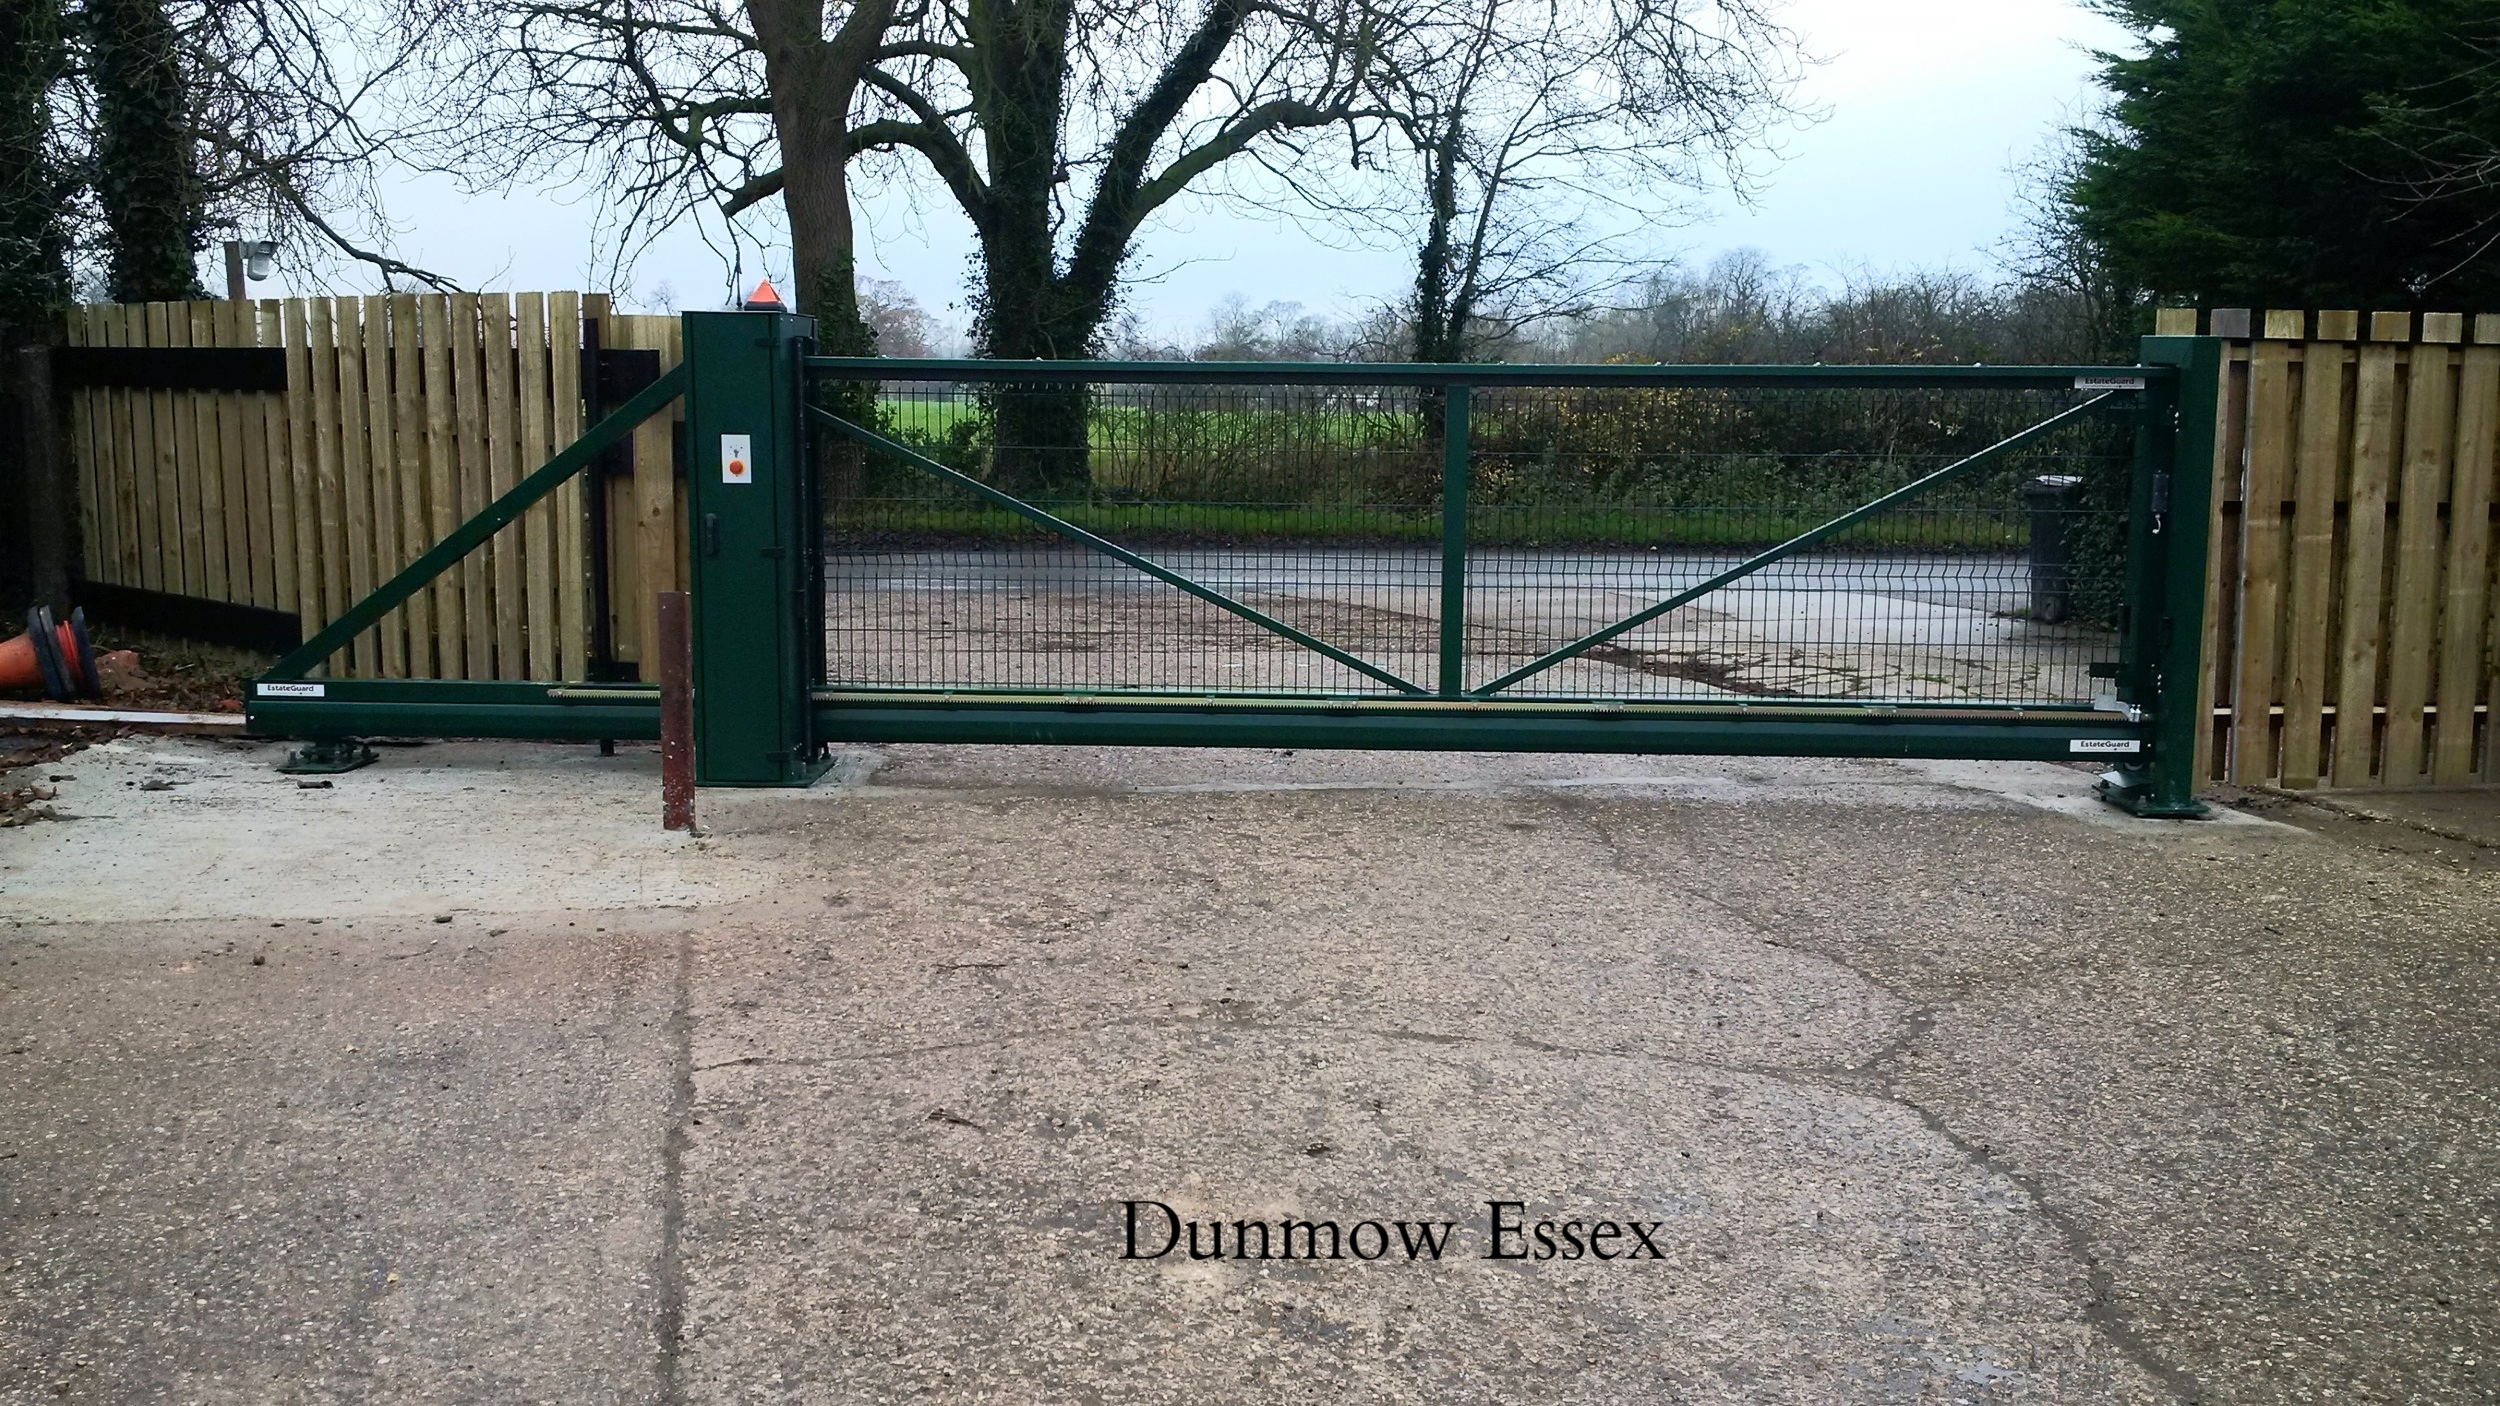 Copy of Dunmow Essex